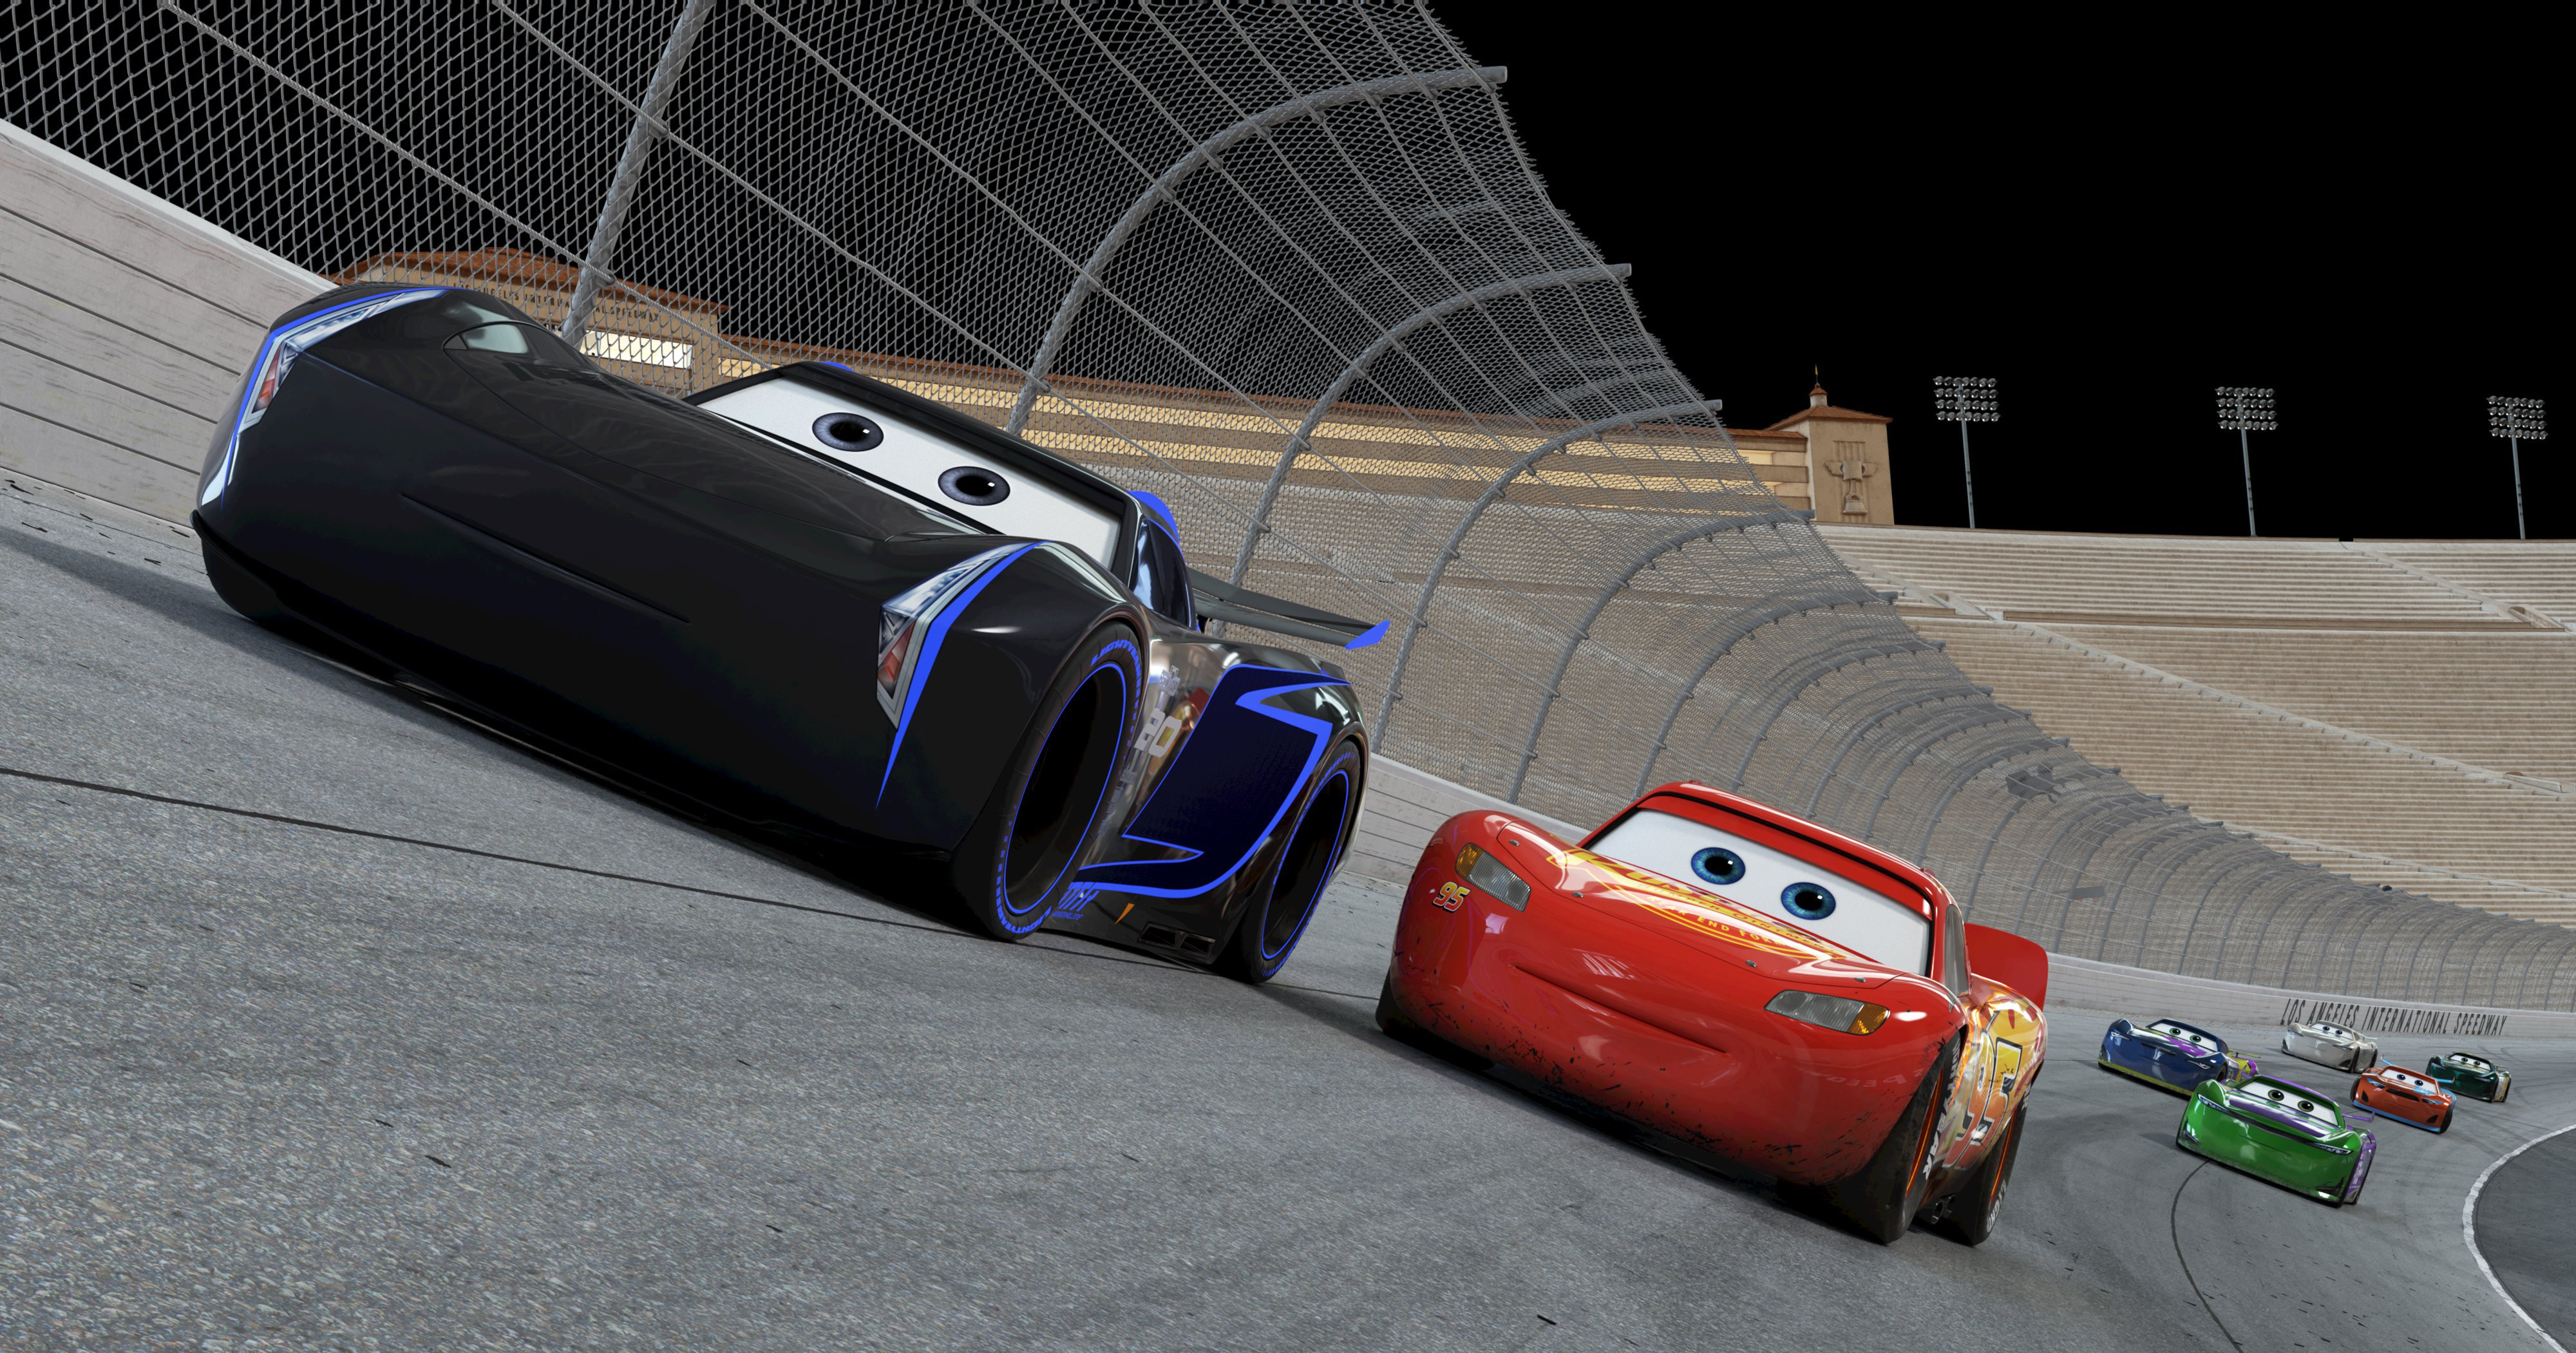 cars 3 review fun but not memorable